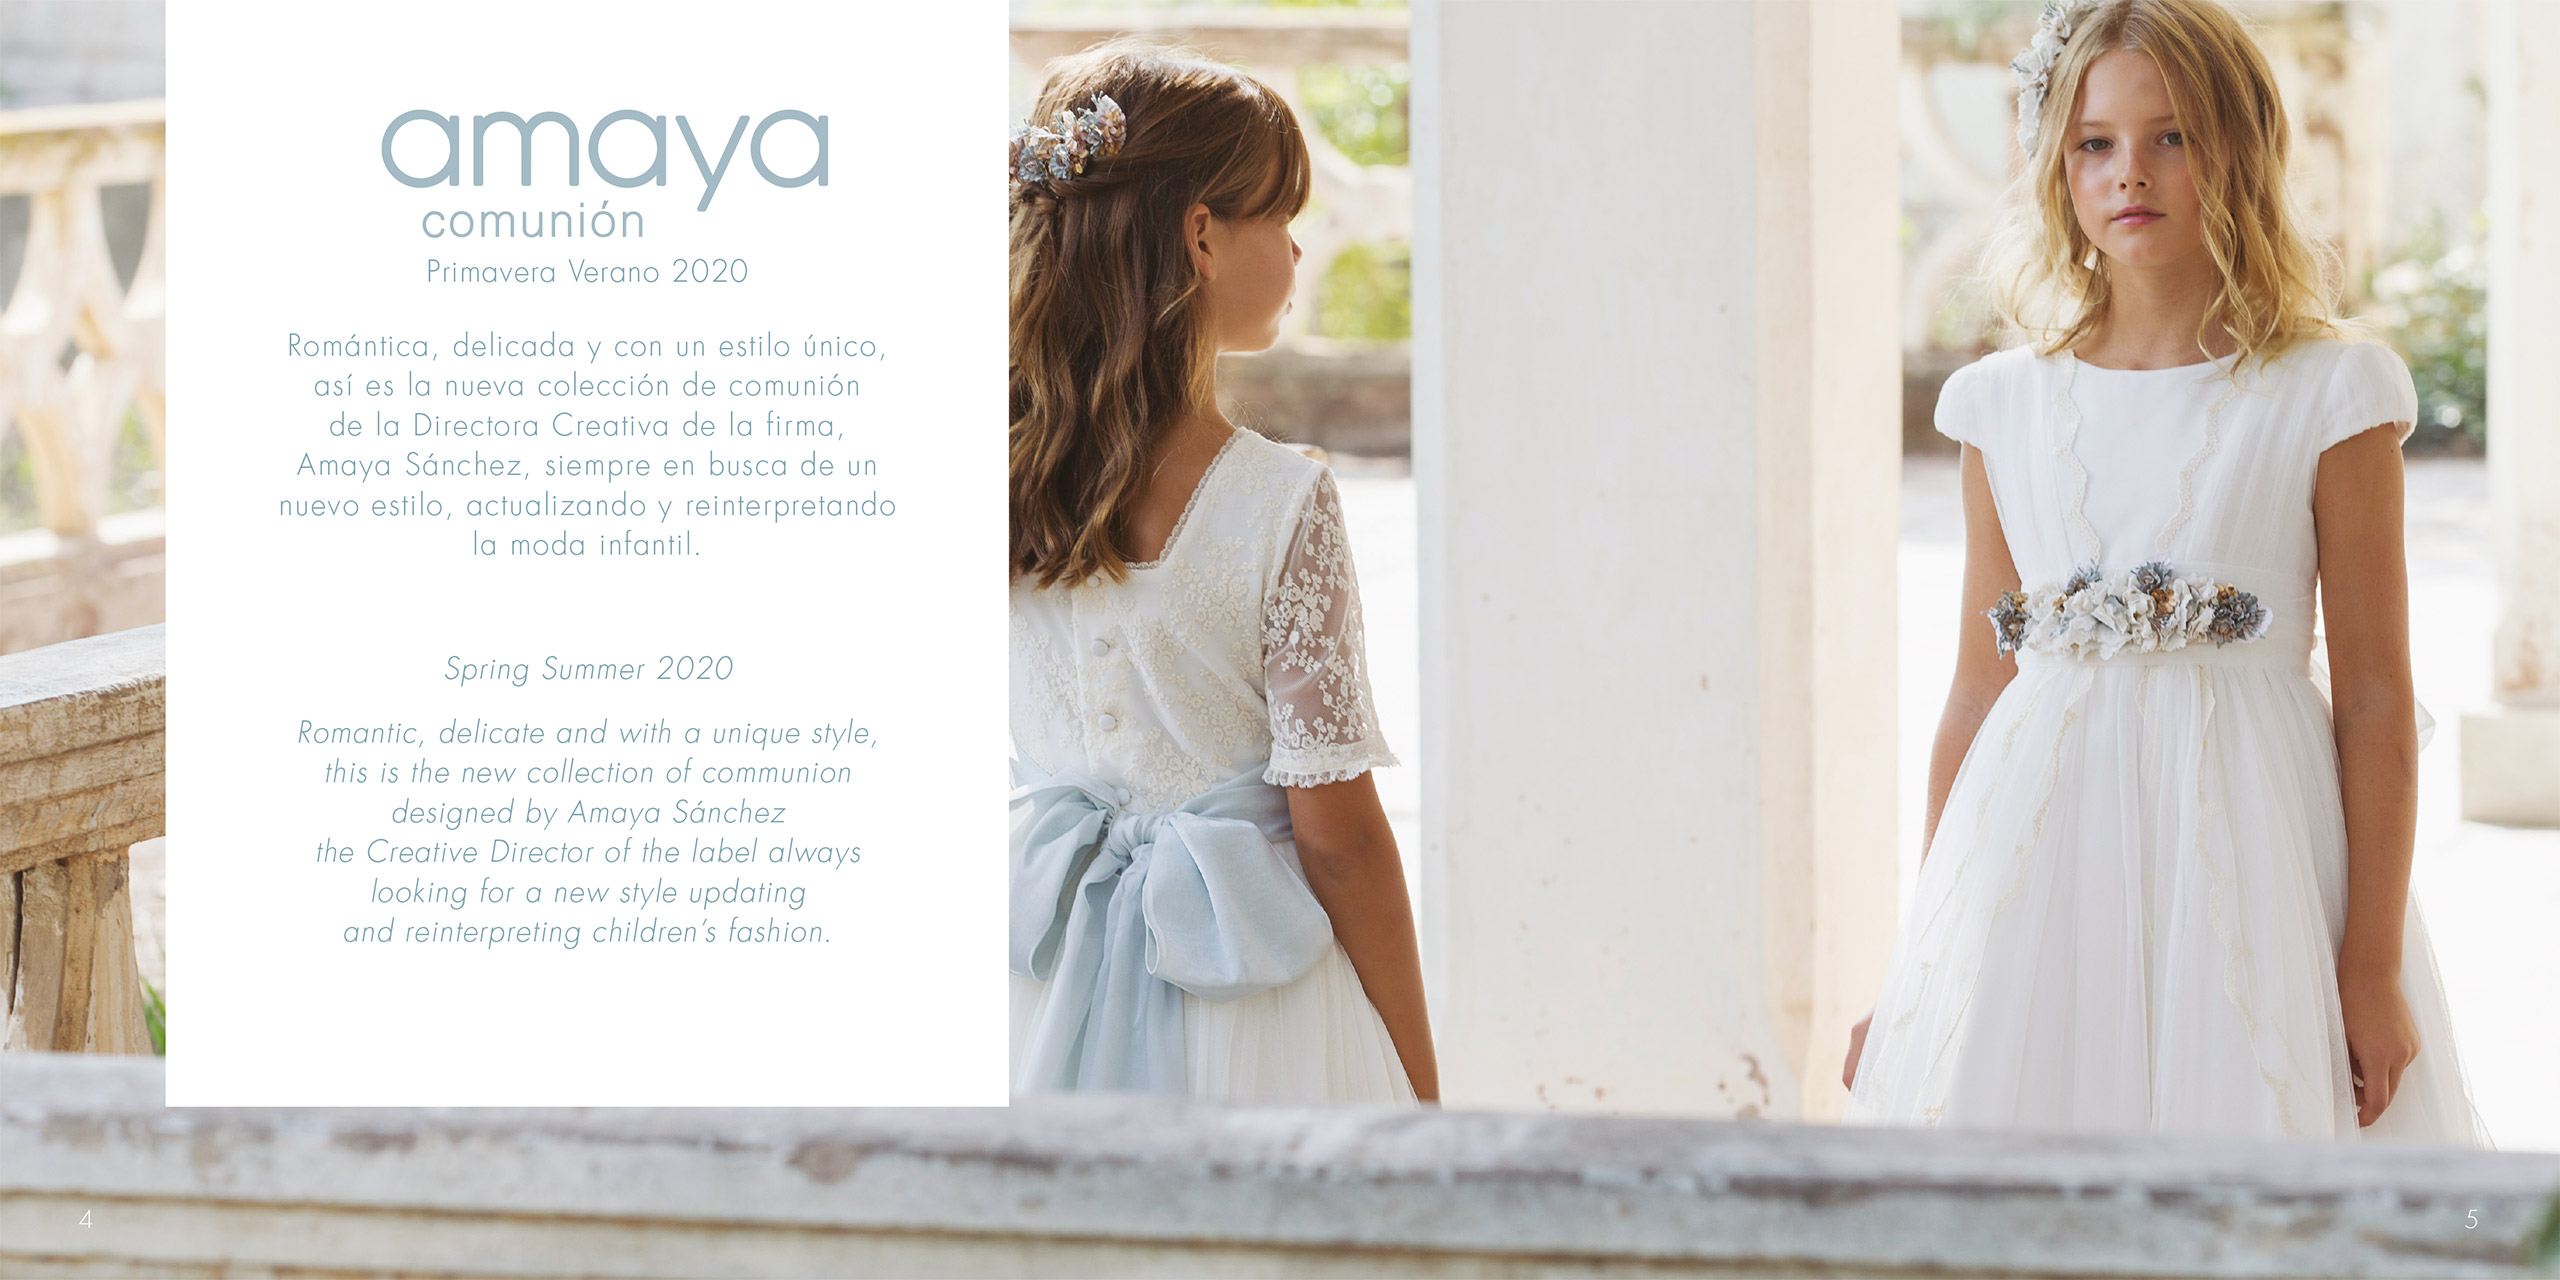 amaya-comunion-catalogo-2p-03